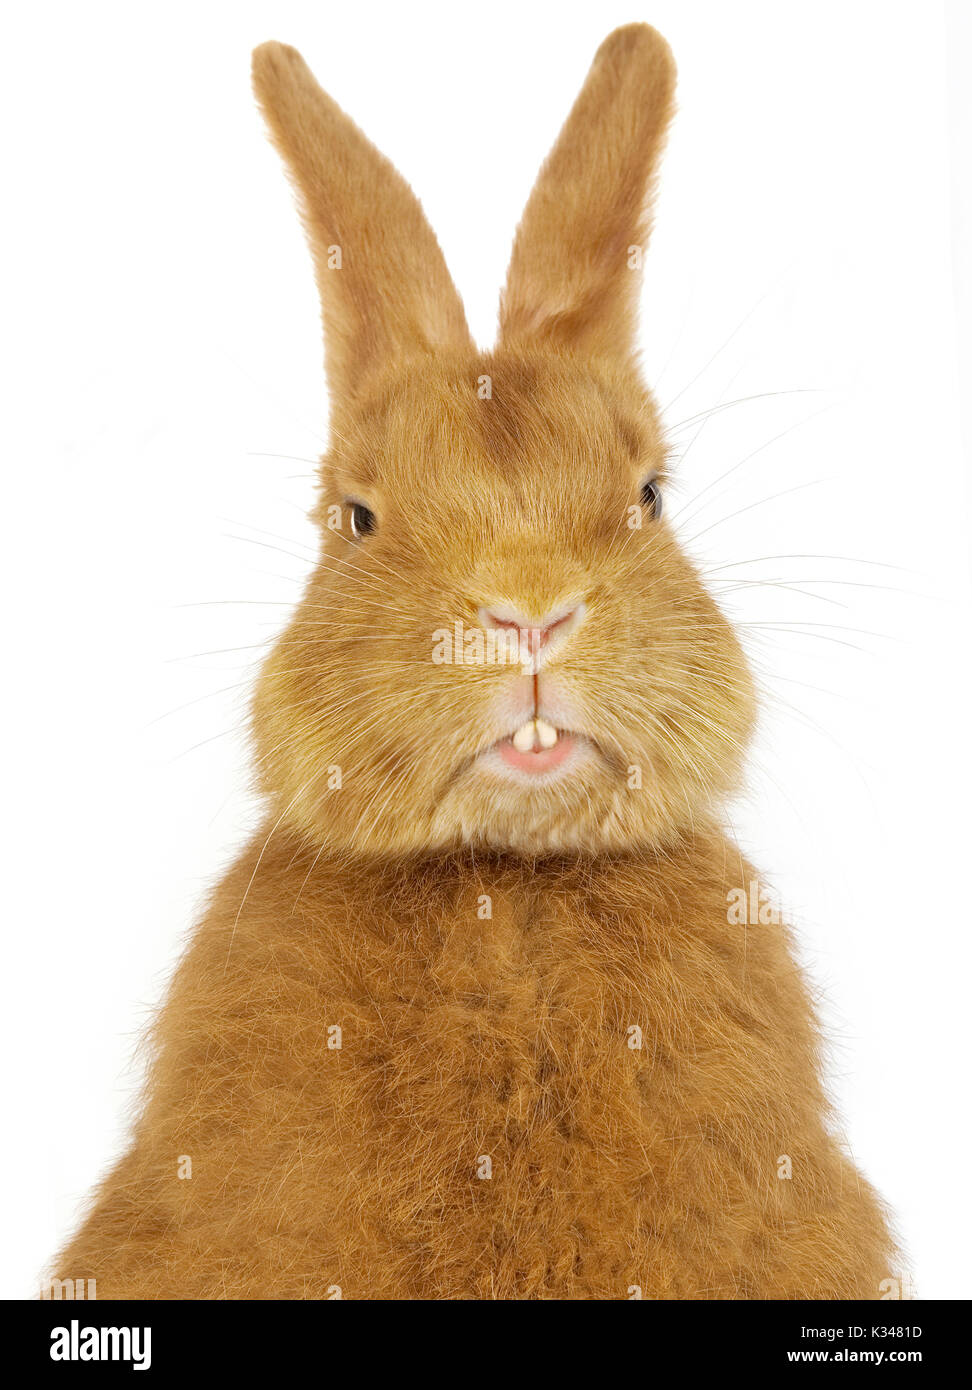 Fauve de Bourgogne domestic rabbit with visible incisors - Stock Image